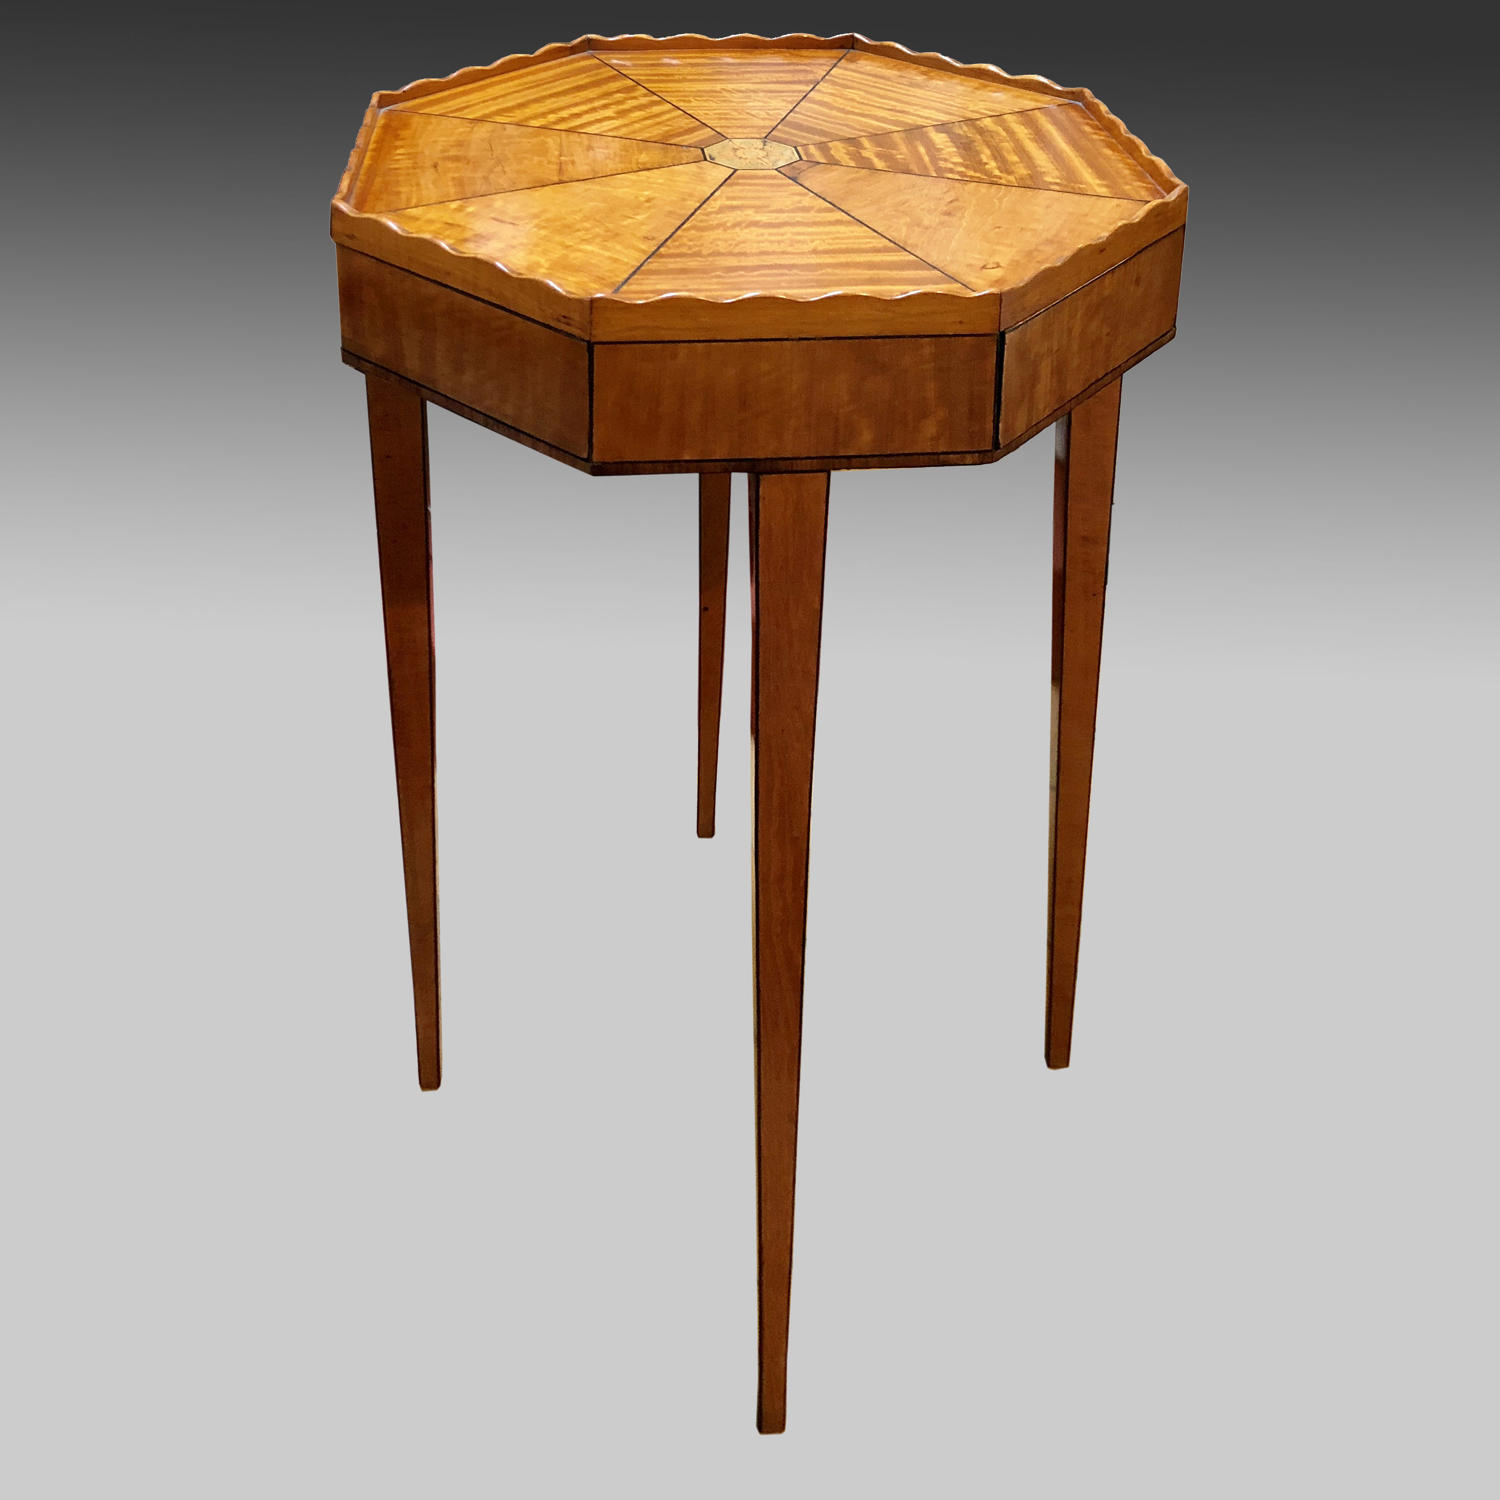 Late 18th century, octagonal satinwood centre table